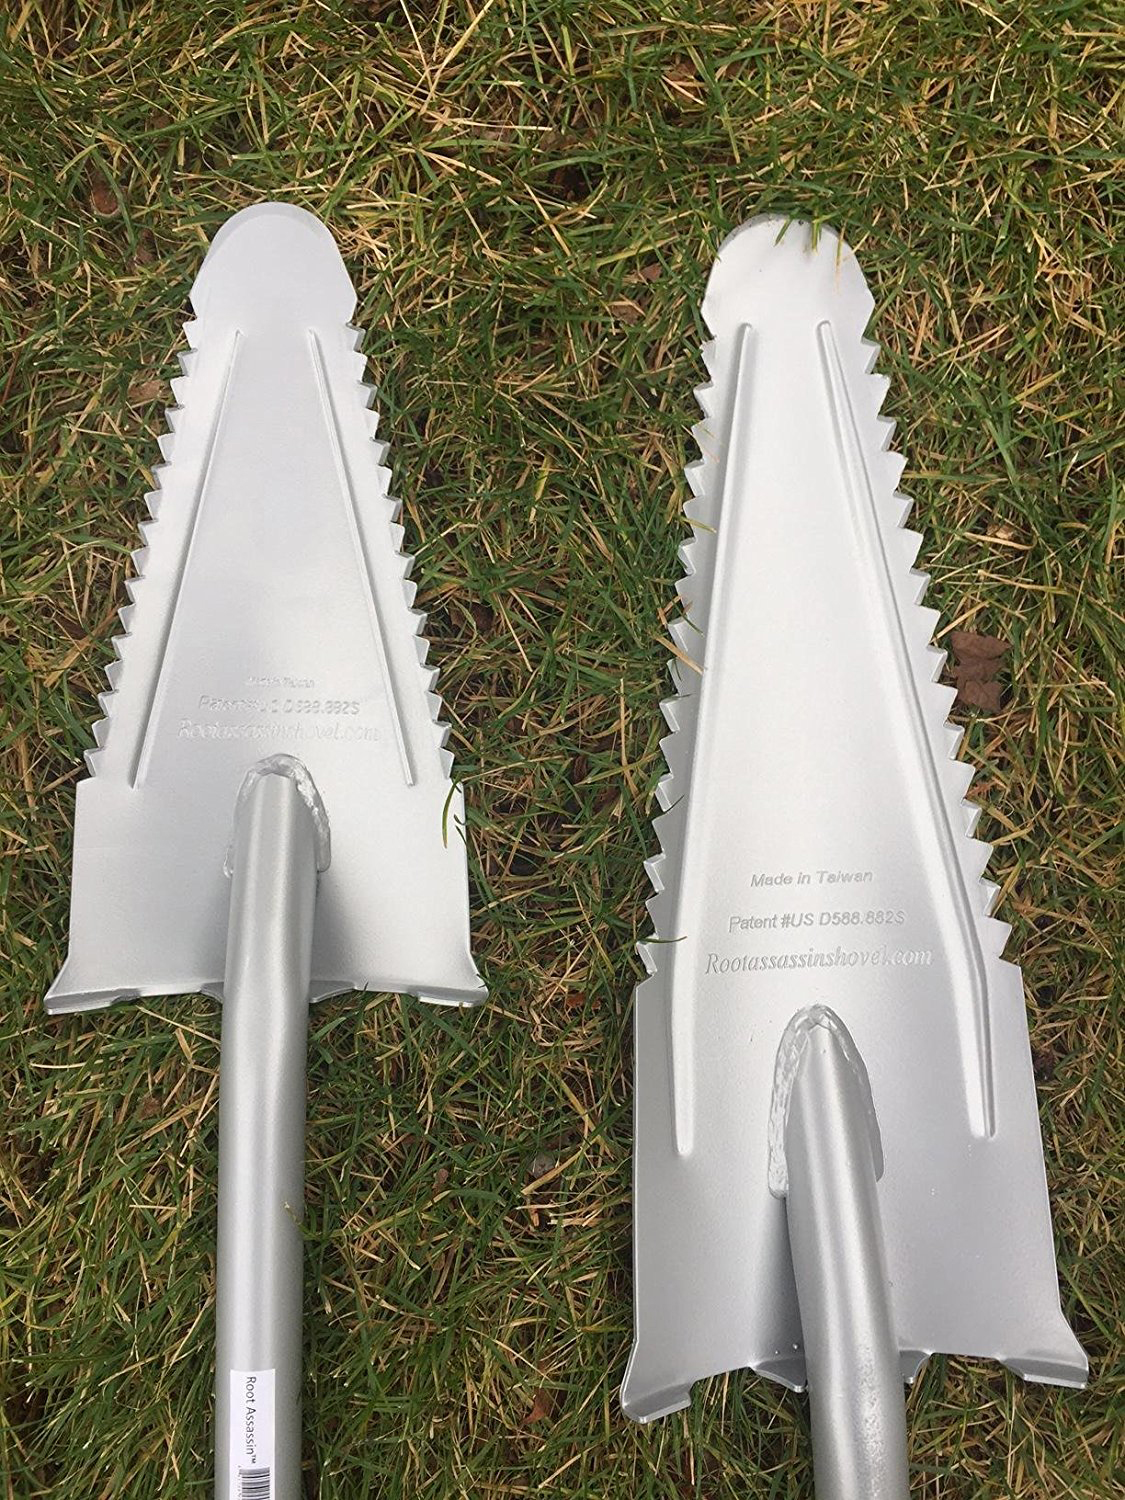 Here are both versions of the Root Assasin Serreted Shovel.